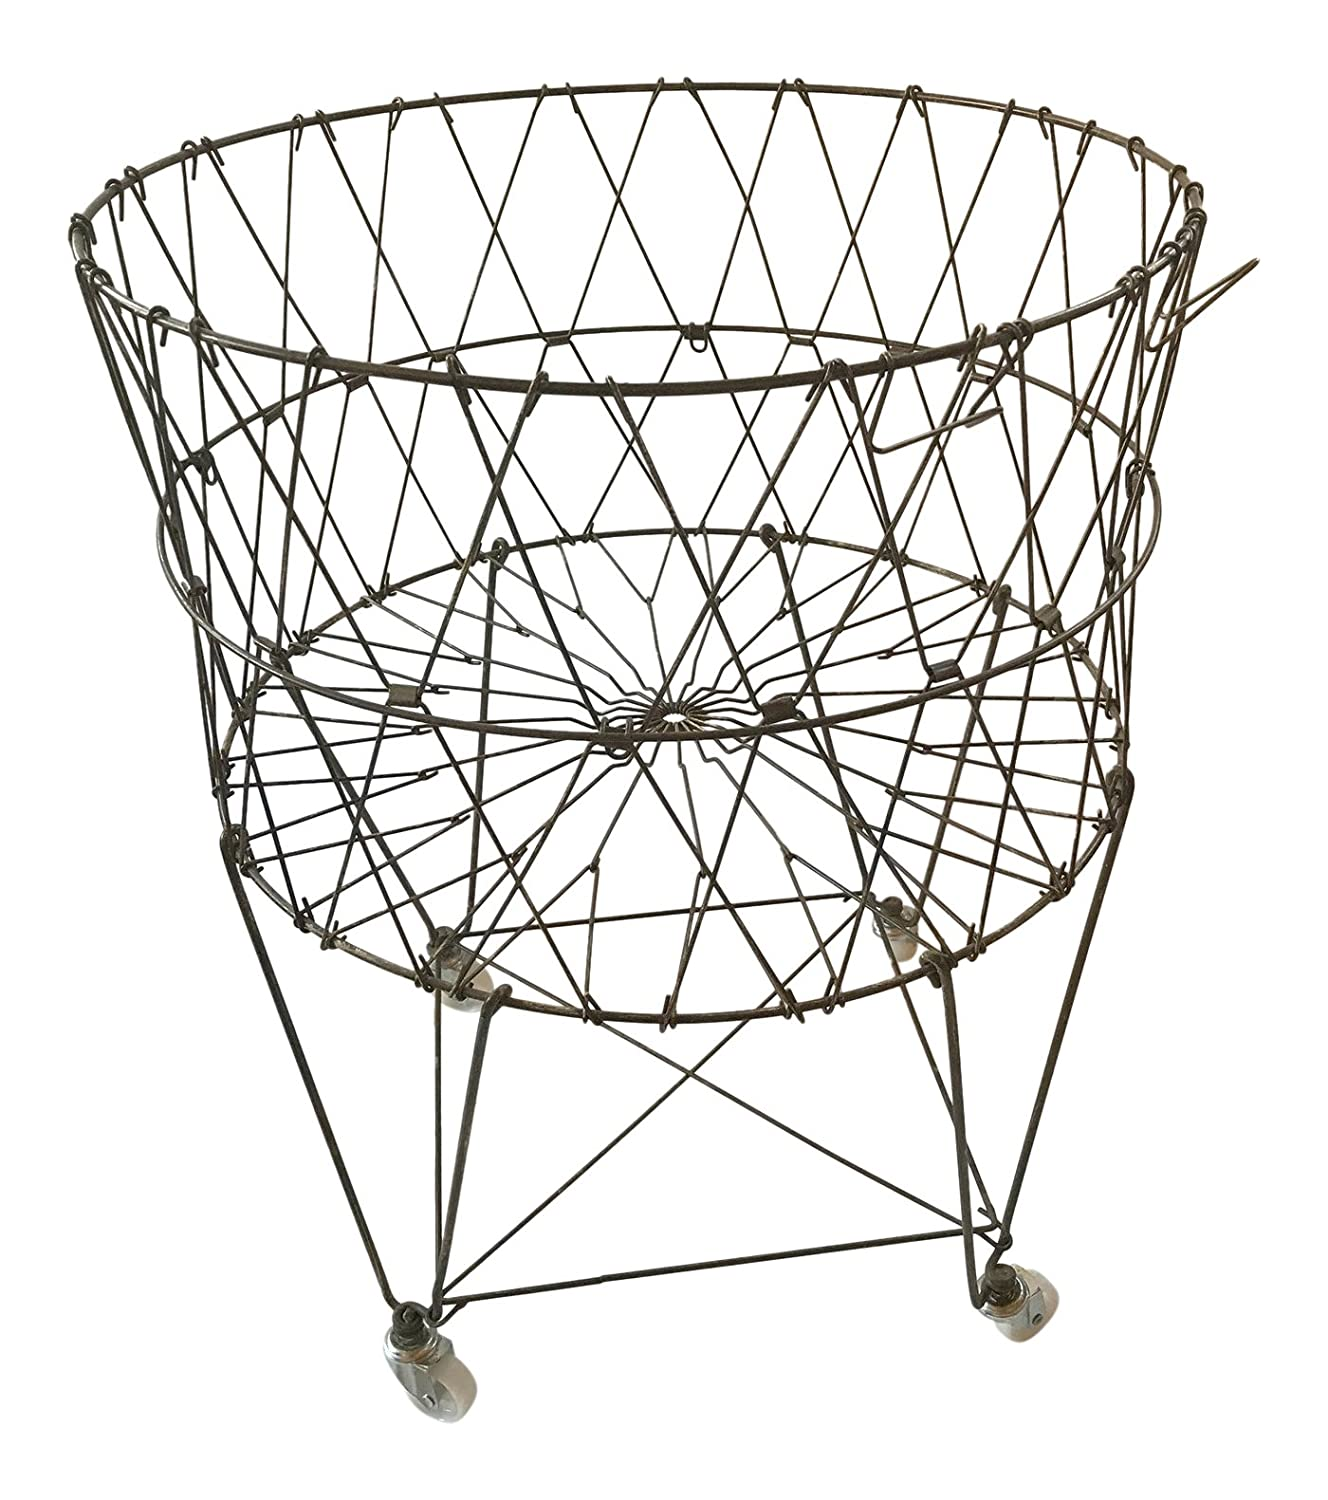 French wire laundry basket.